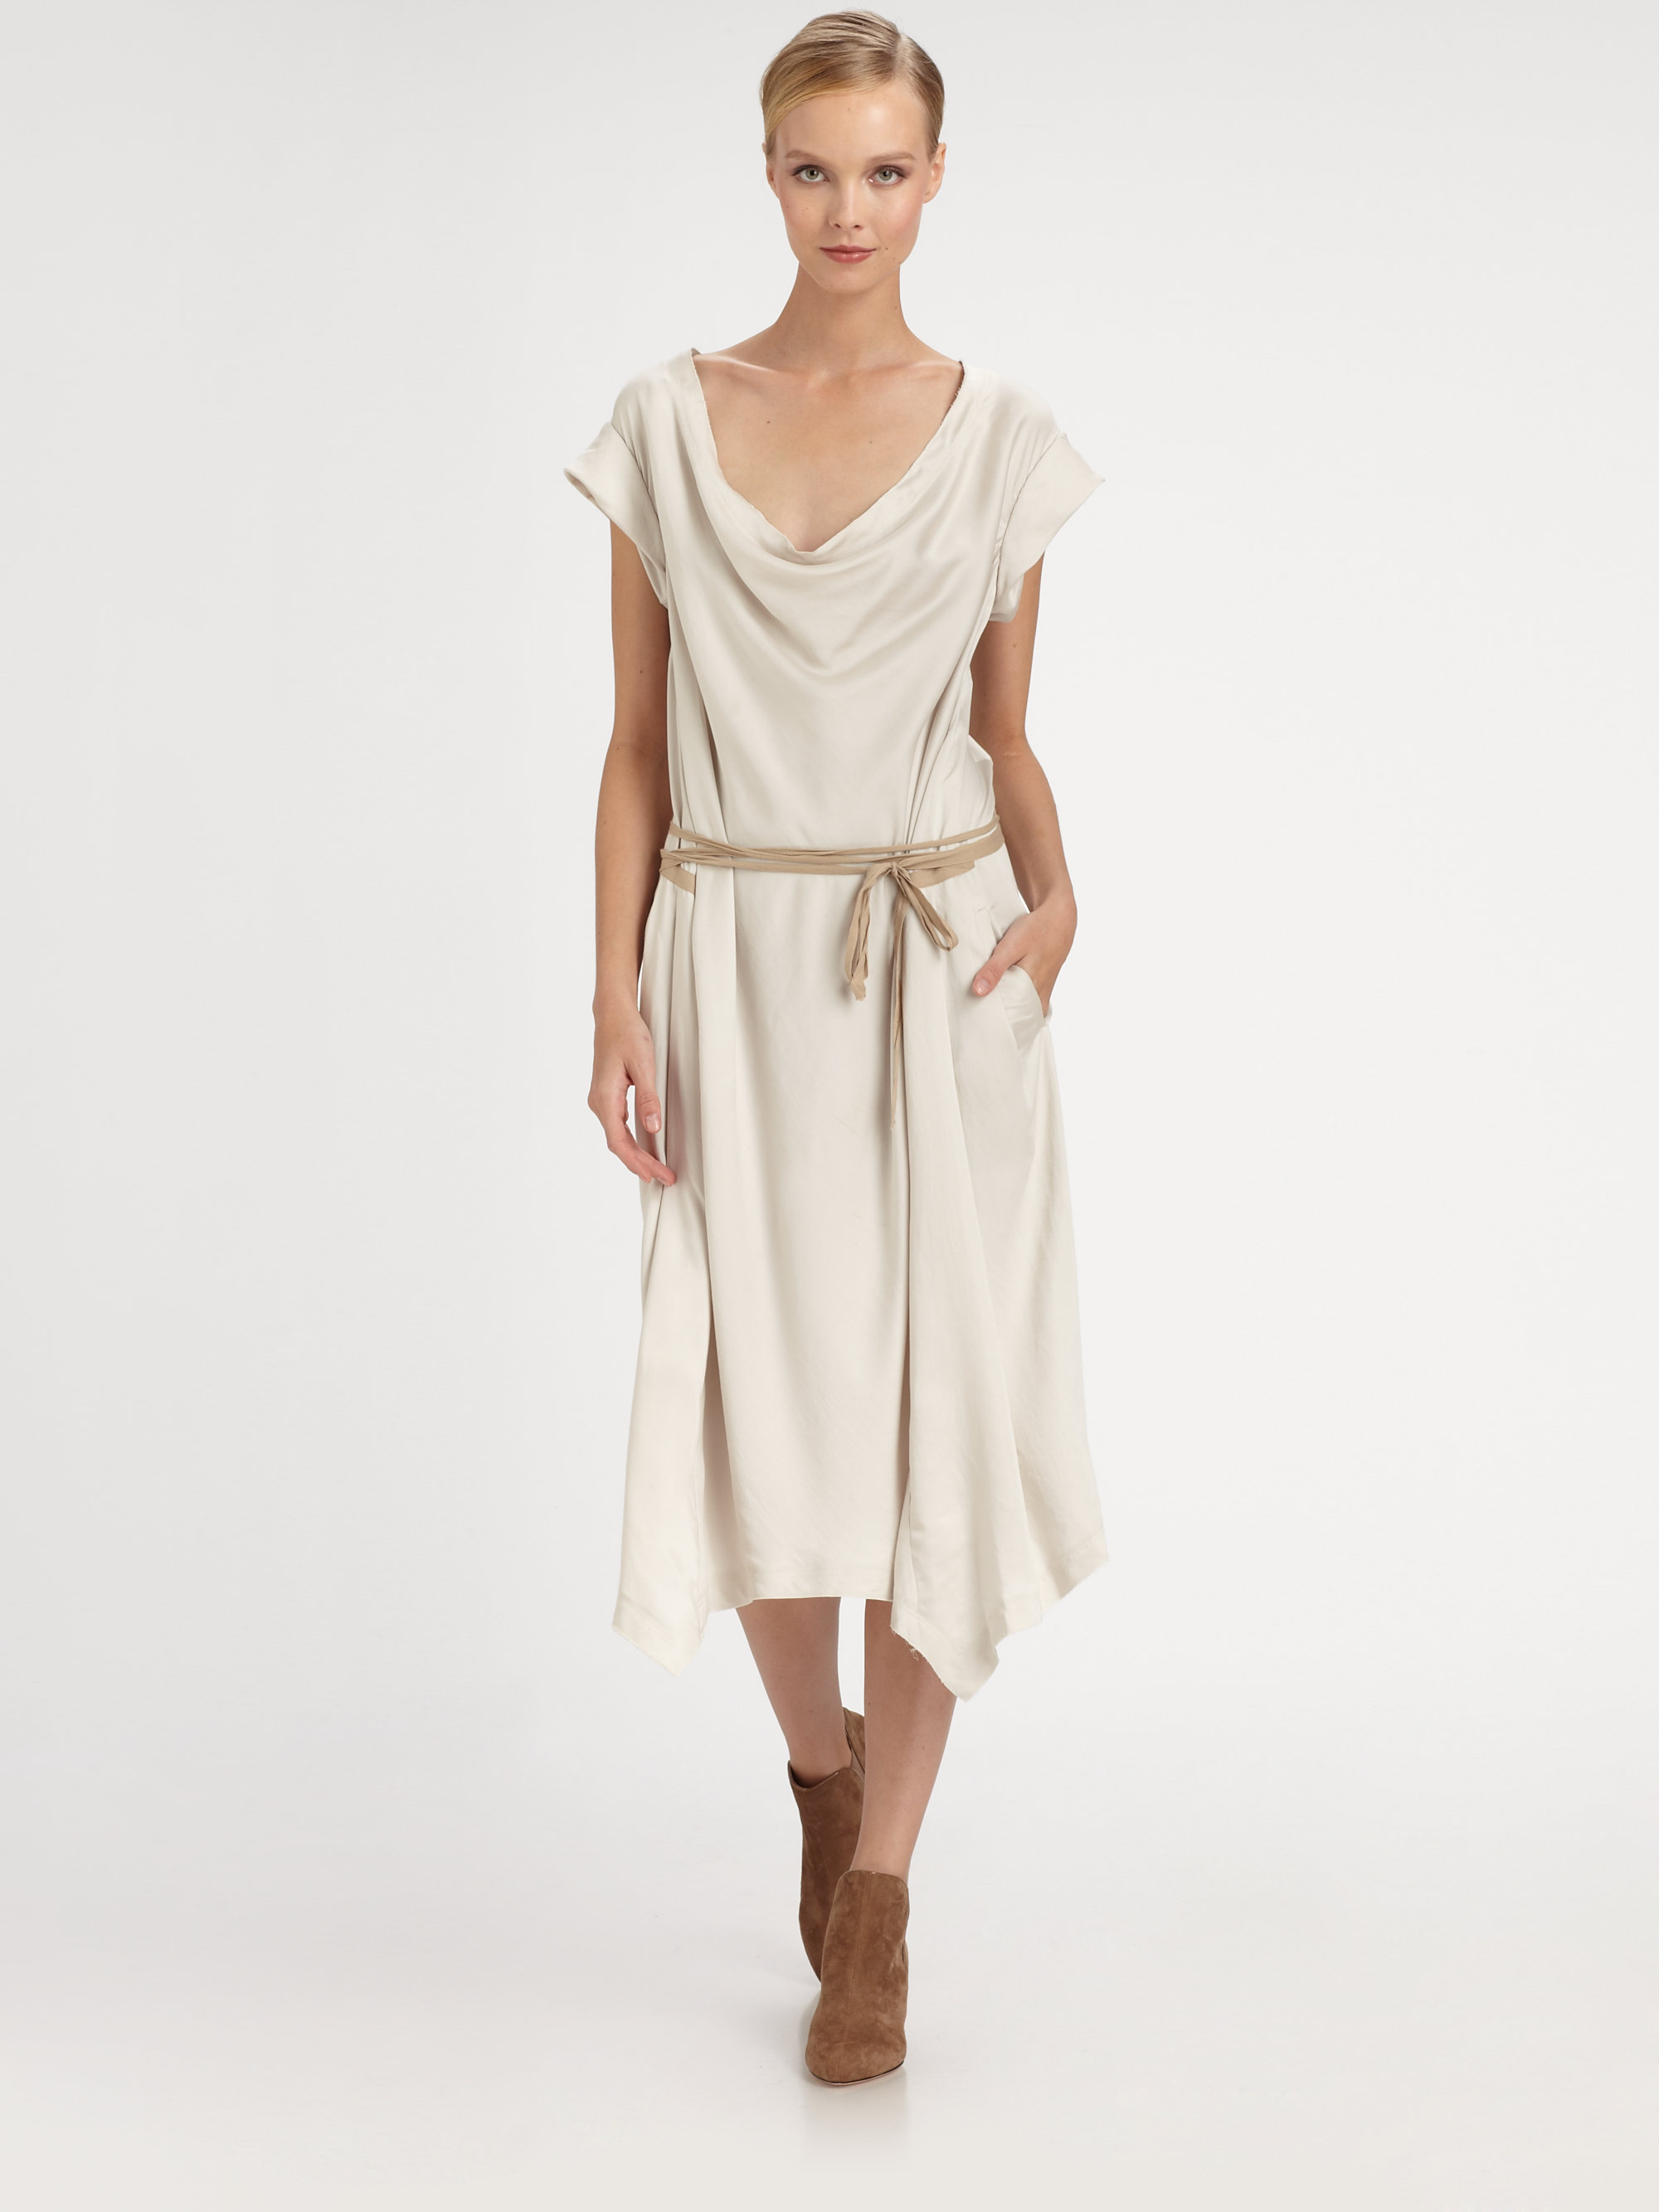 Donna karan new york drape front dress in beige porcelain for Donna karen new york